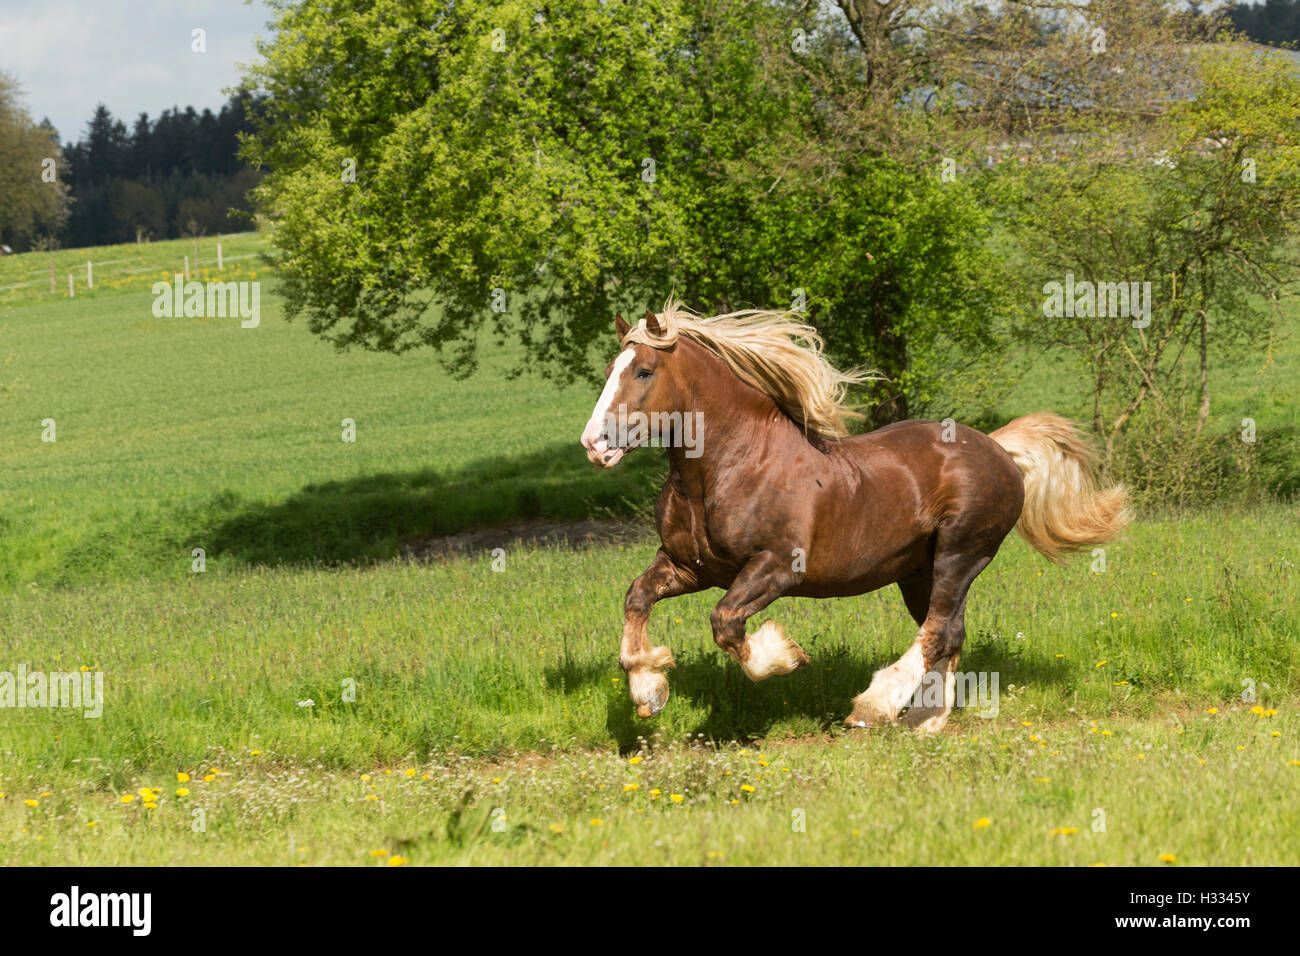 Suddeustche German heavy draft draught horse free - Stock Image